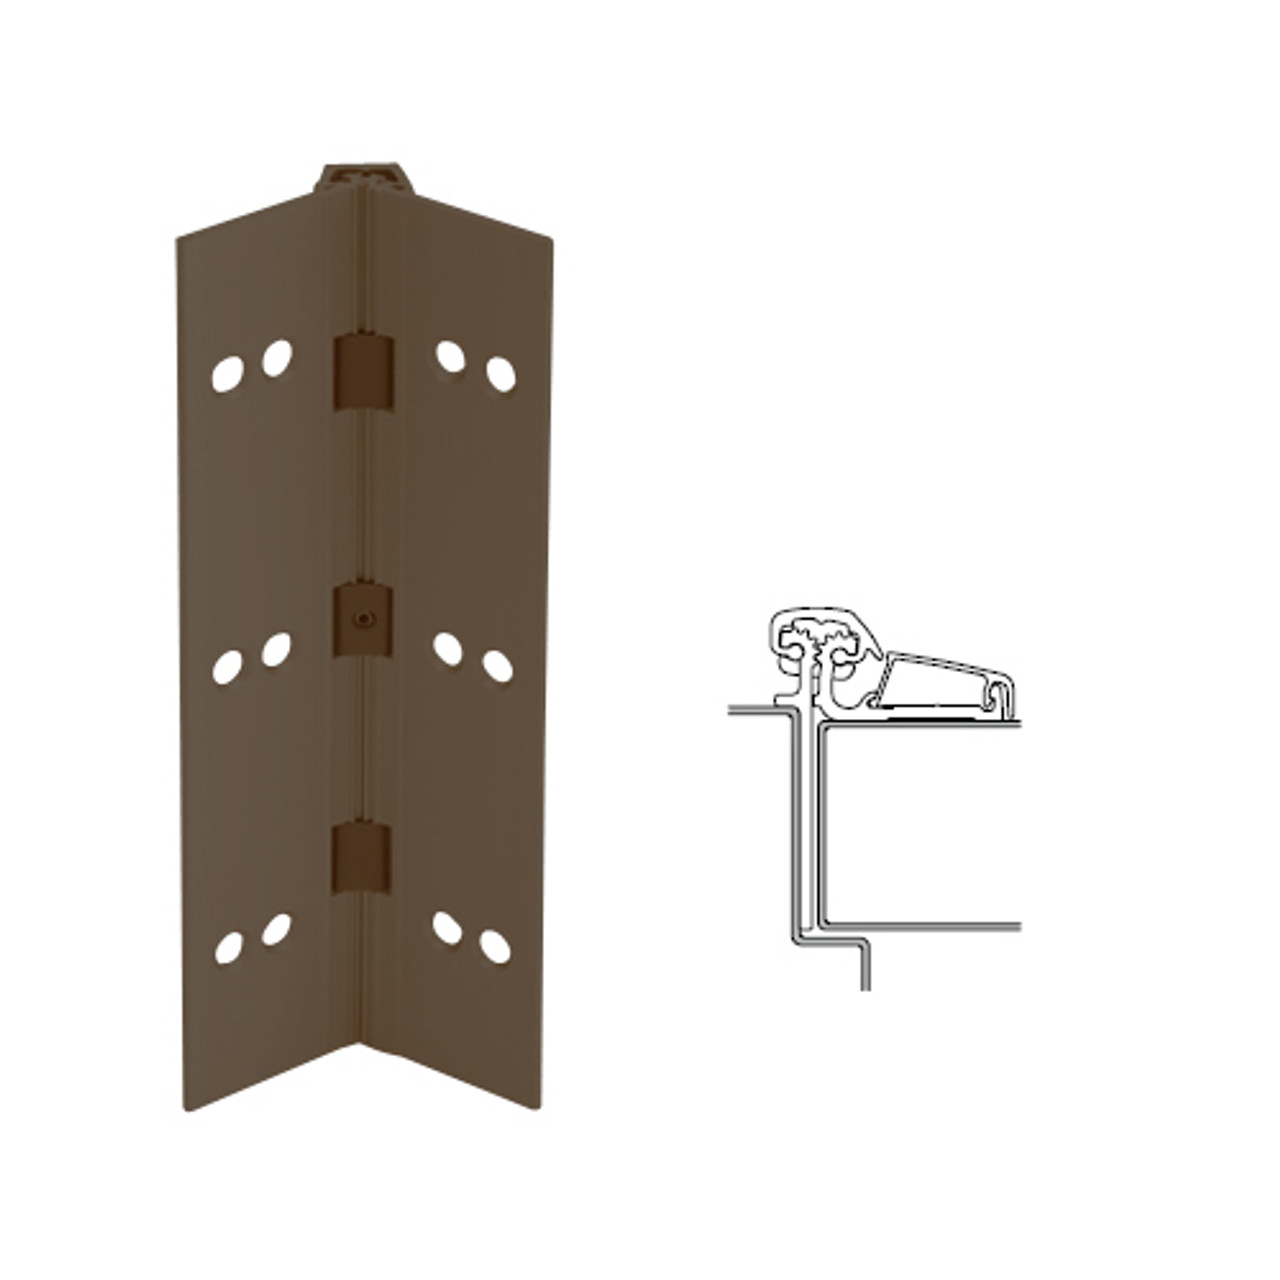 054XY-313AN-95-TF IVES Adjustable Half Surface Continuous Geared Hinges with Thread Forming Screws in Dark Bronze Anodized